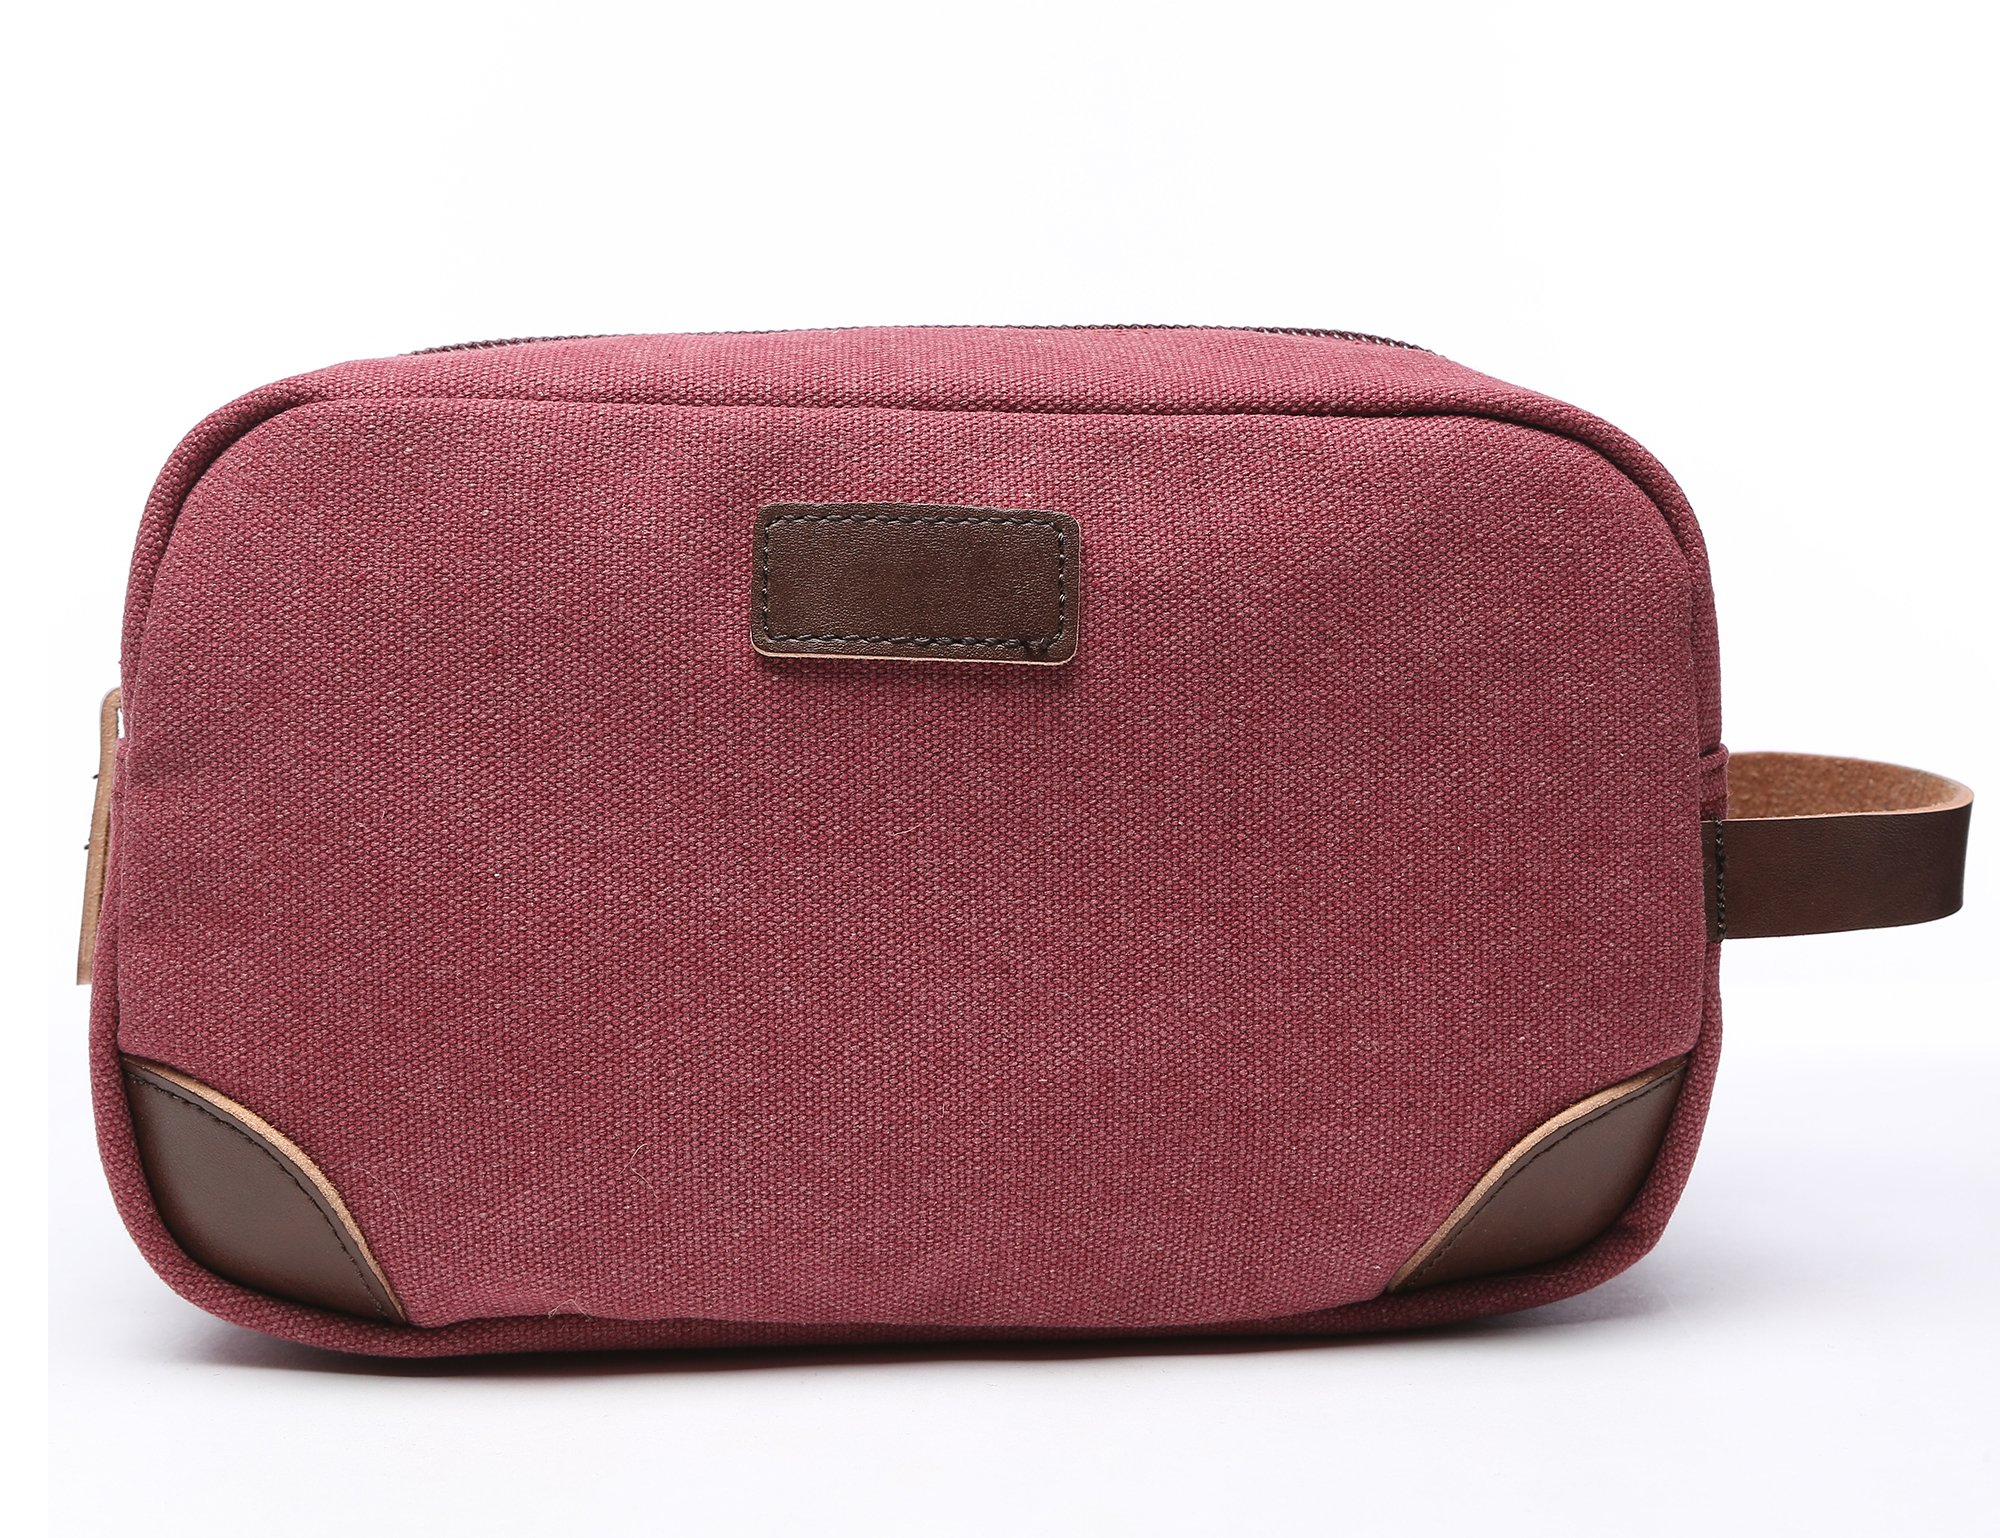 Vercord Classic Canvas Leather Travel Dopp Kit Shaving Toiletry Cosmetic Kit Bag Red